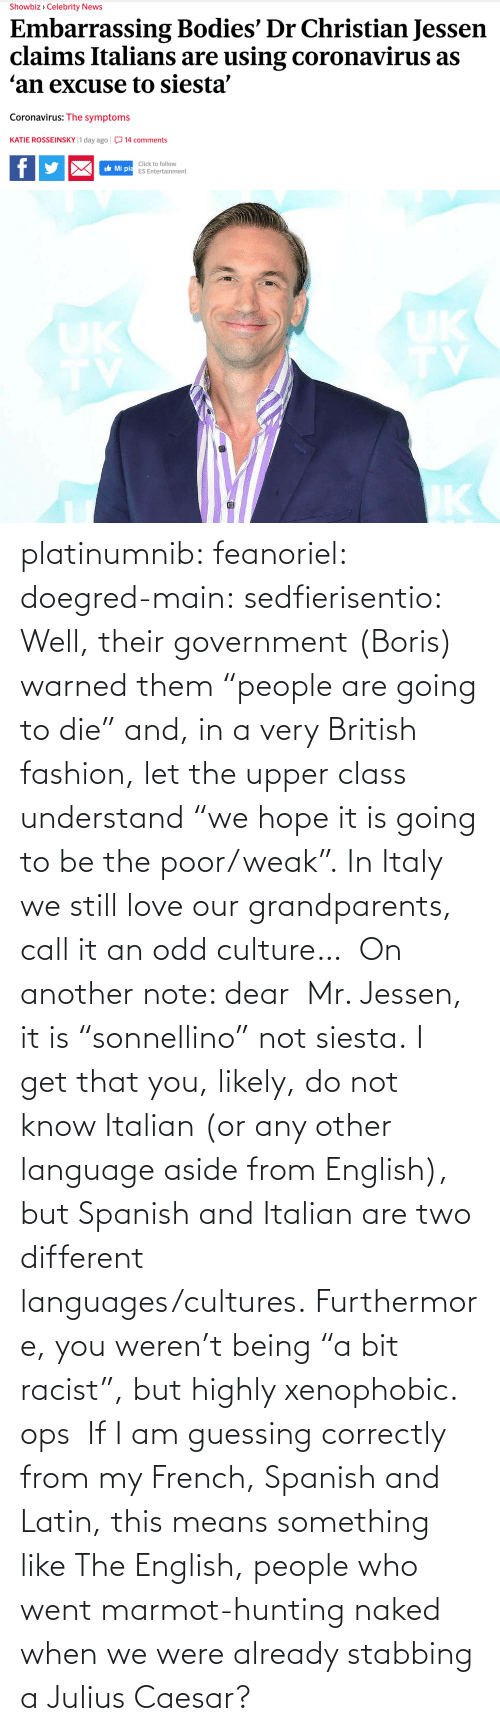 "stabbing: platinumnib:  feanoriel: doegred-main:  sedfierisentio:  Well, their government (Boris) warned them ""people are going to die"" and, in a very British fashion, let the upper class understand ""we hope it is going to be the poor/weak"". In Italy we still love our grandparents, call it an odd culture…  On another note: dear  Mr. Jessen, it is ""sonnellino"" not siesta. I get that you, likely, do not know Italian (or any other language aside from English), but Spanish and Italian are two different languages/cultures. Furthermore, you weren't being ""a bit racist"", but highly xenophobic.   ops   If I am guessing correctly from my French, Spanish and Latin, this means something like The English, people who went marmot-hunting naked when we were already stabbing a Julius Caesar?"